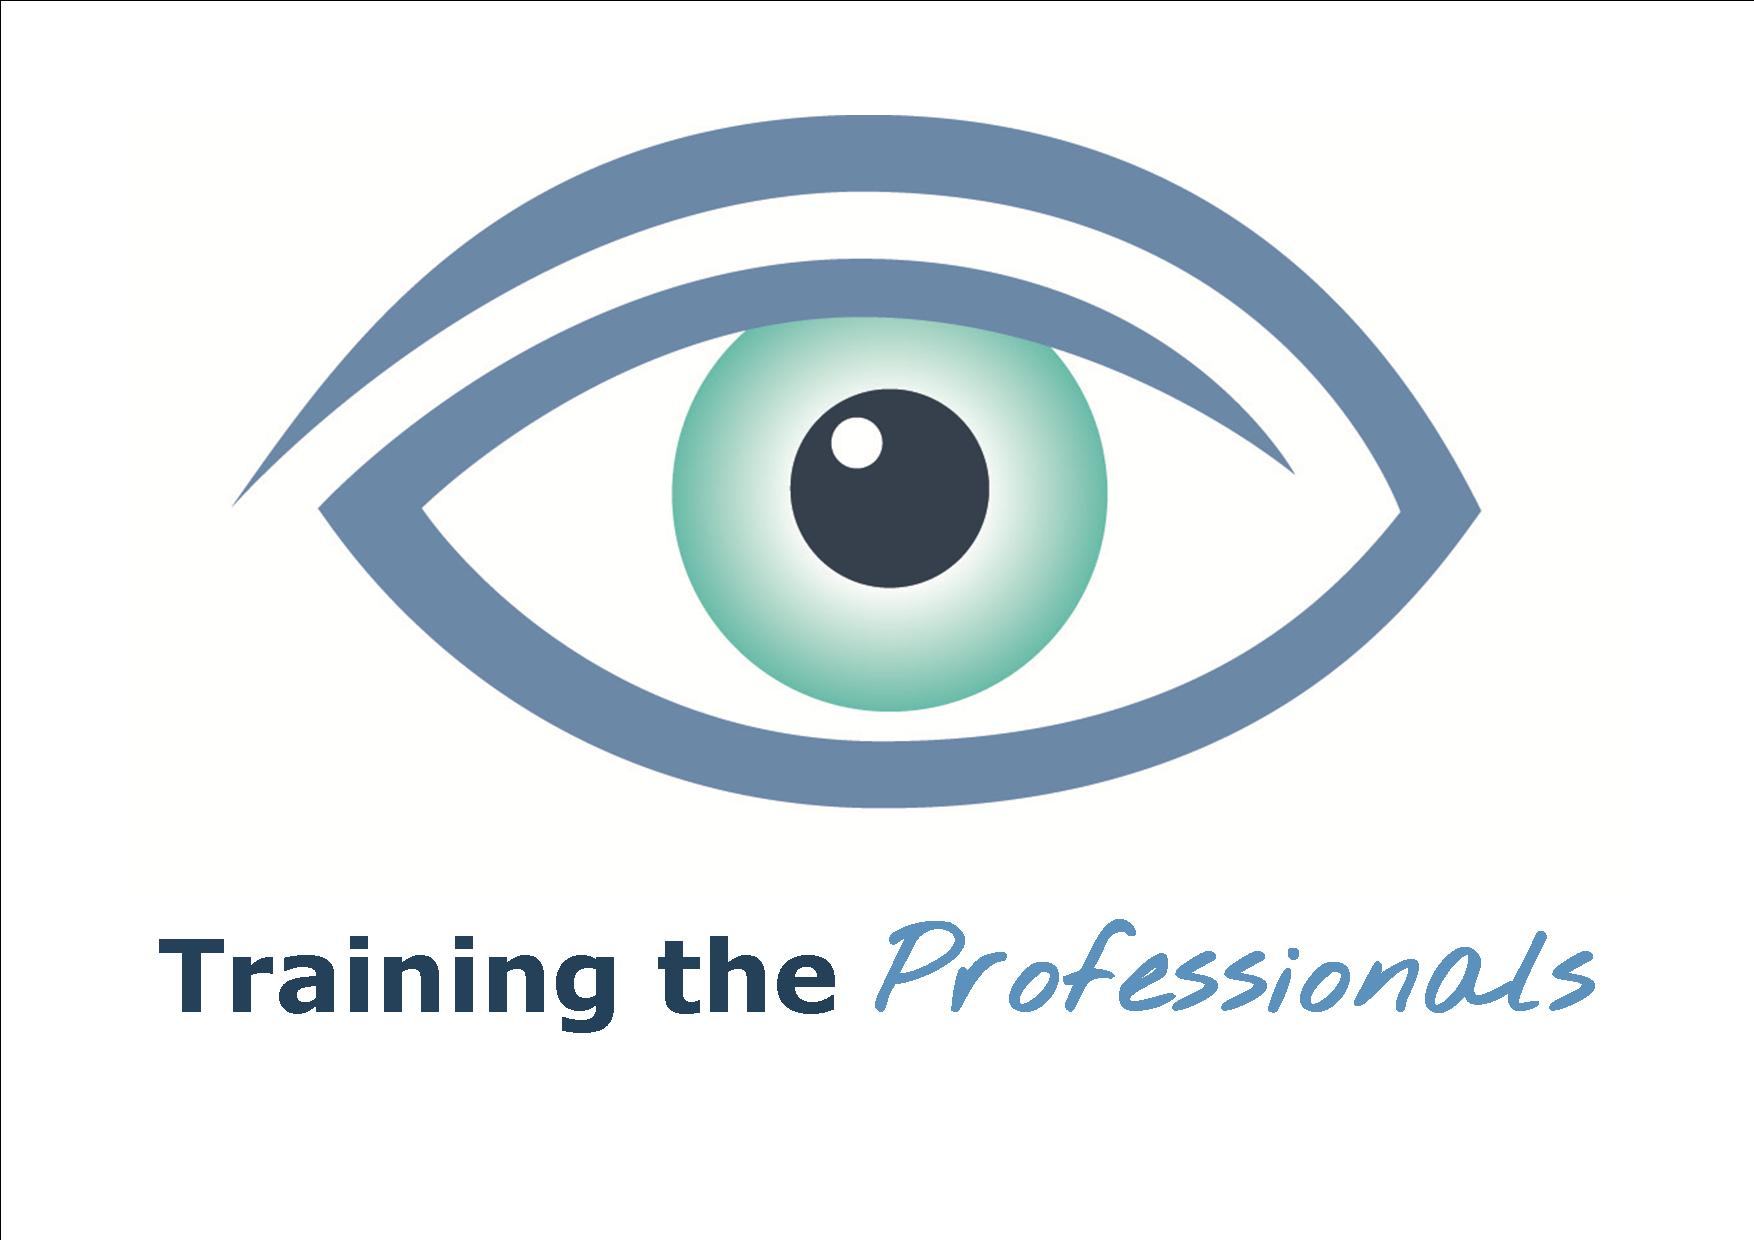 The Nystagmus Network eye logo and the words Training the Professionals